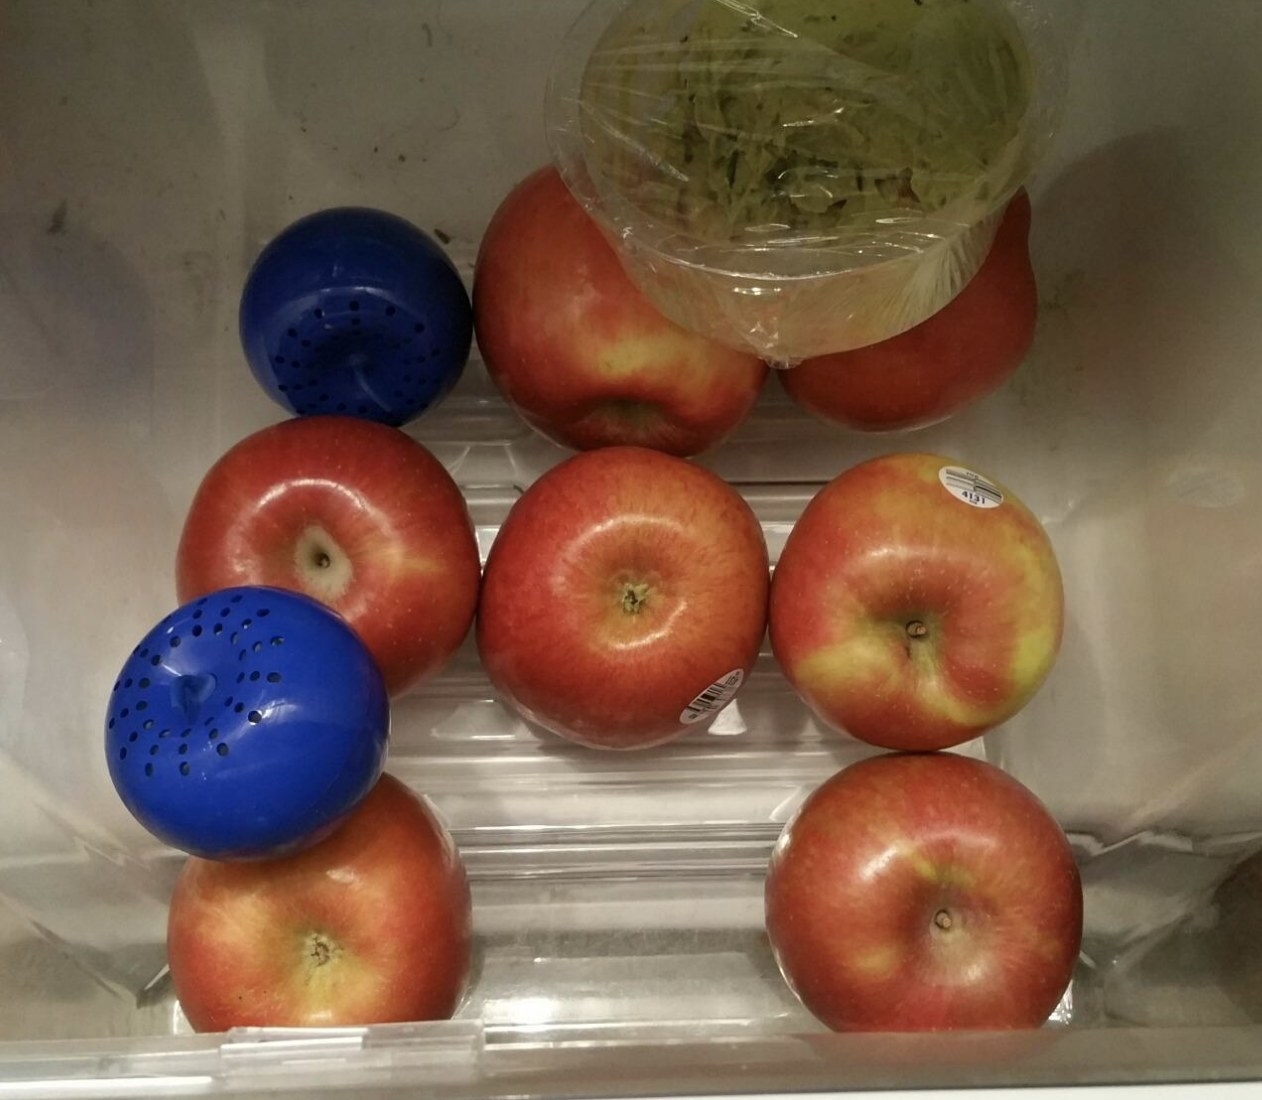 Produce balls in a drawer with apples